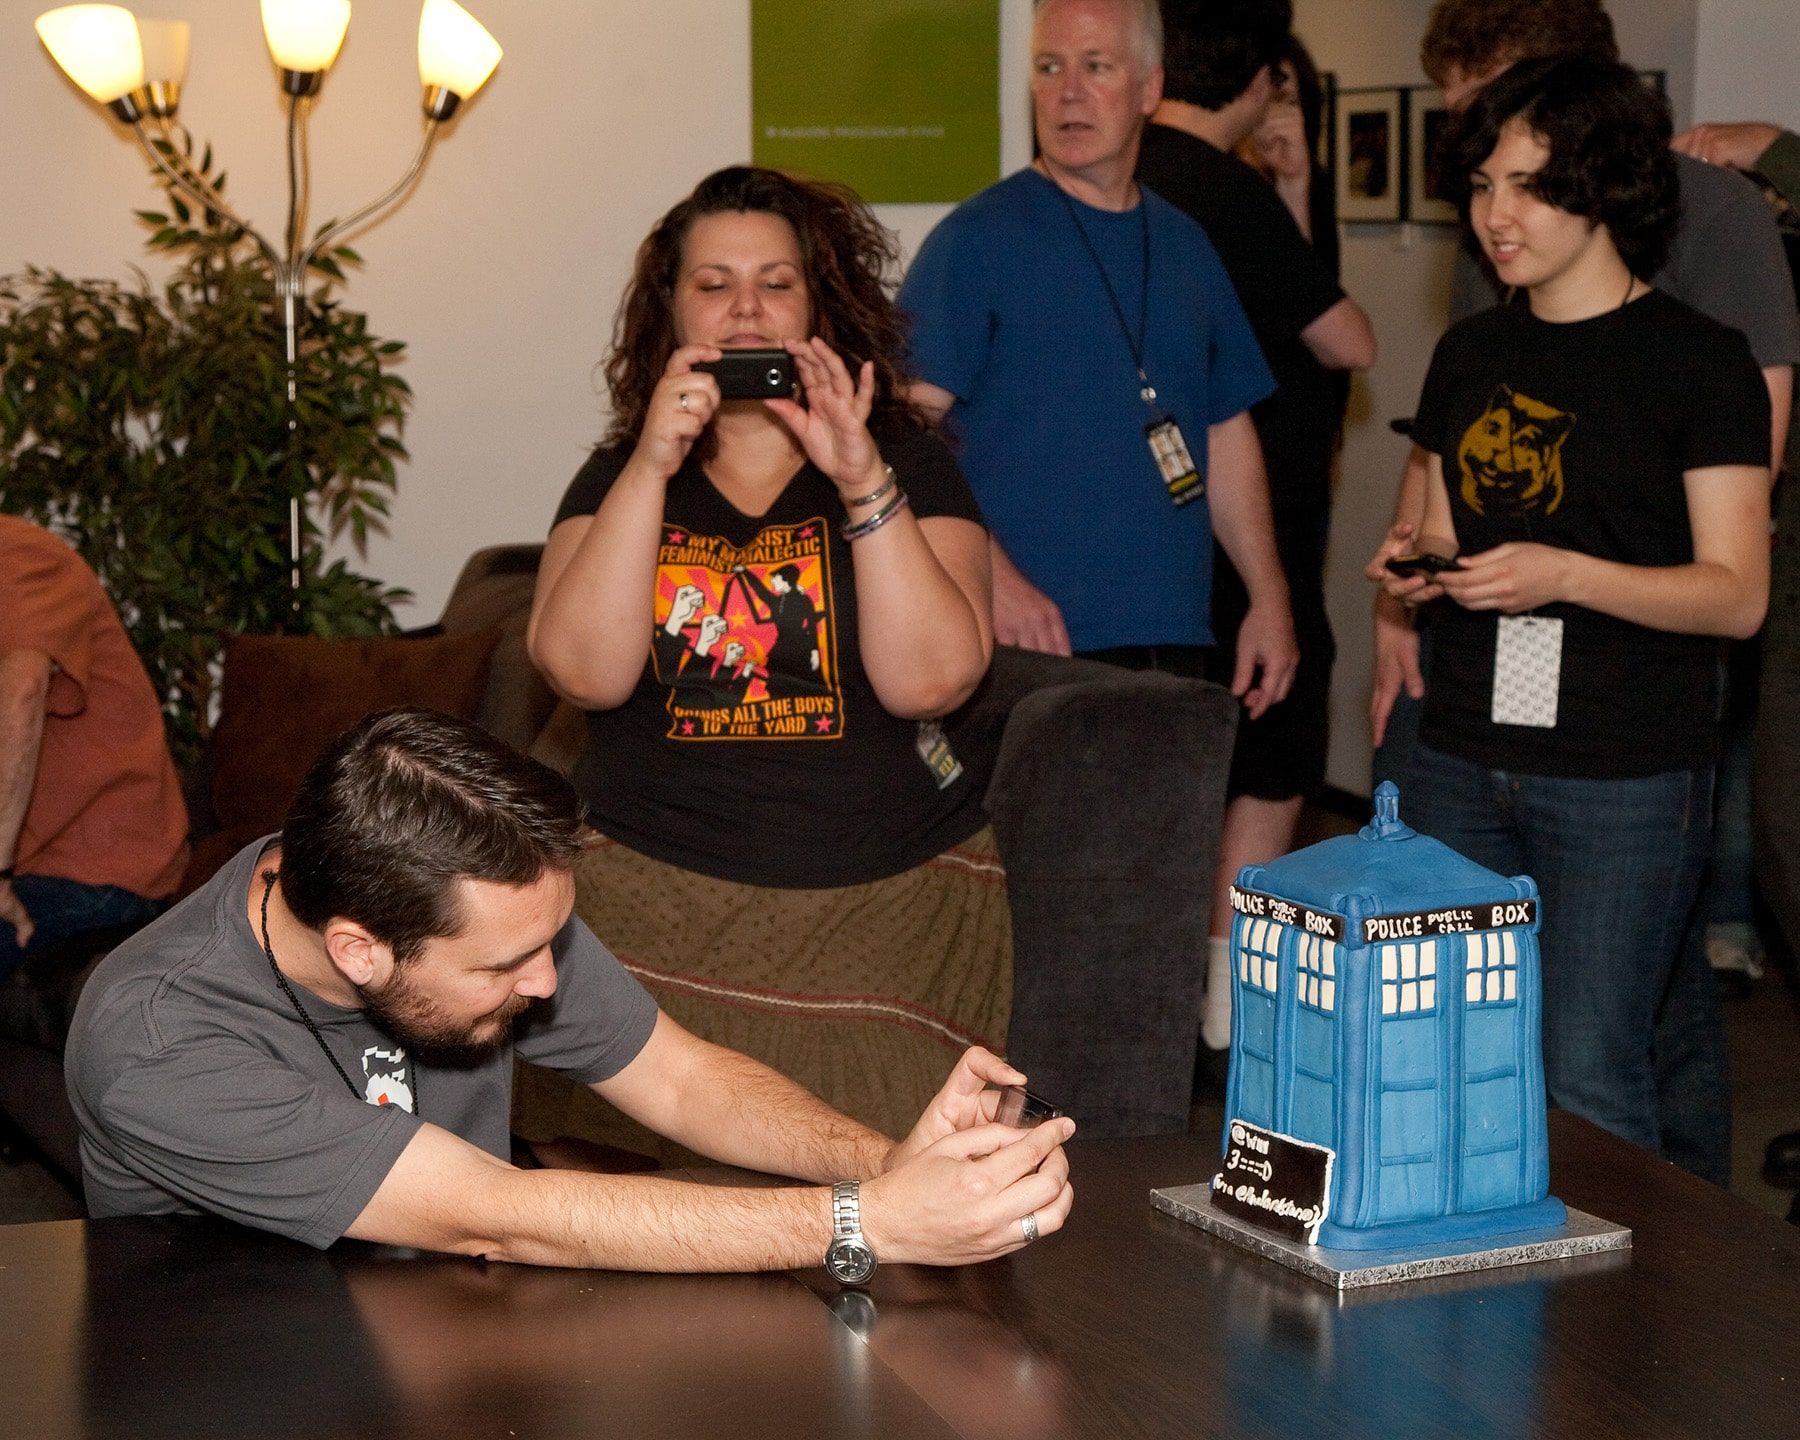 Wil Wheaton leaning on a table, taking a photo of the TARDIS Cake.